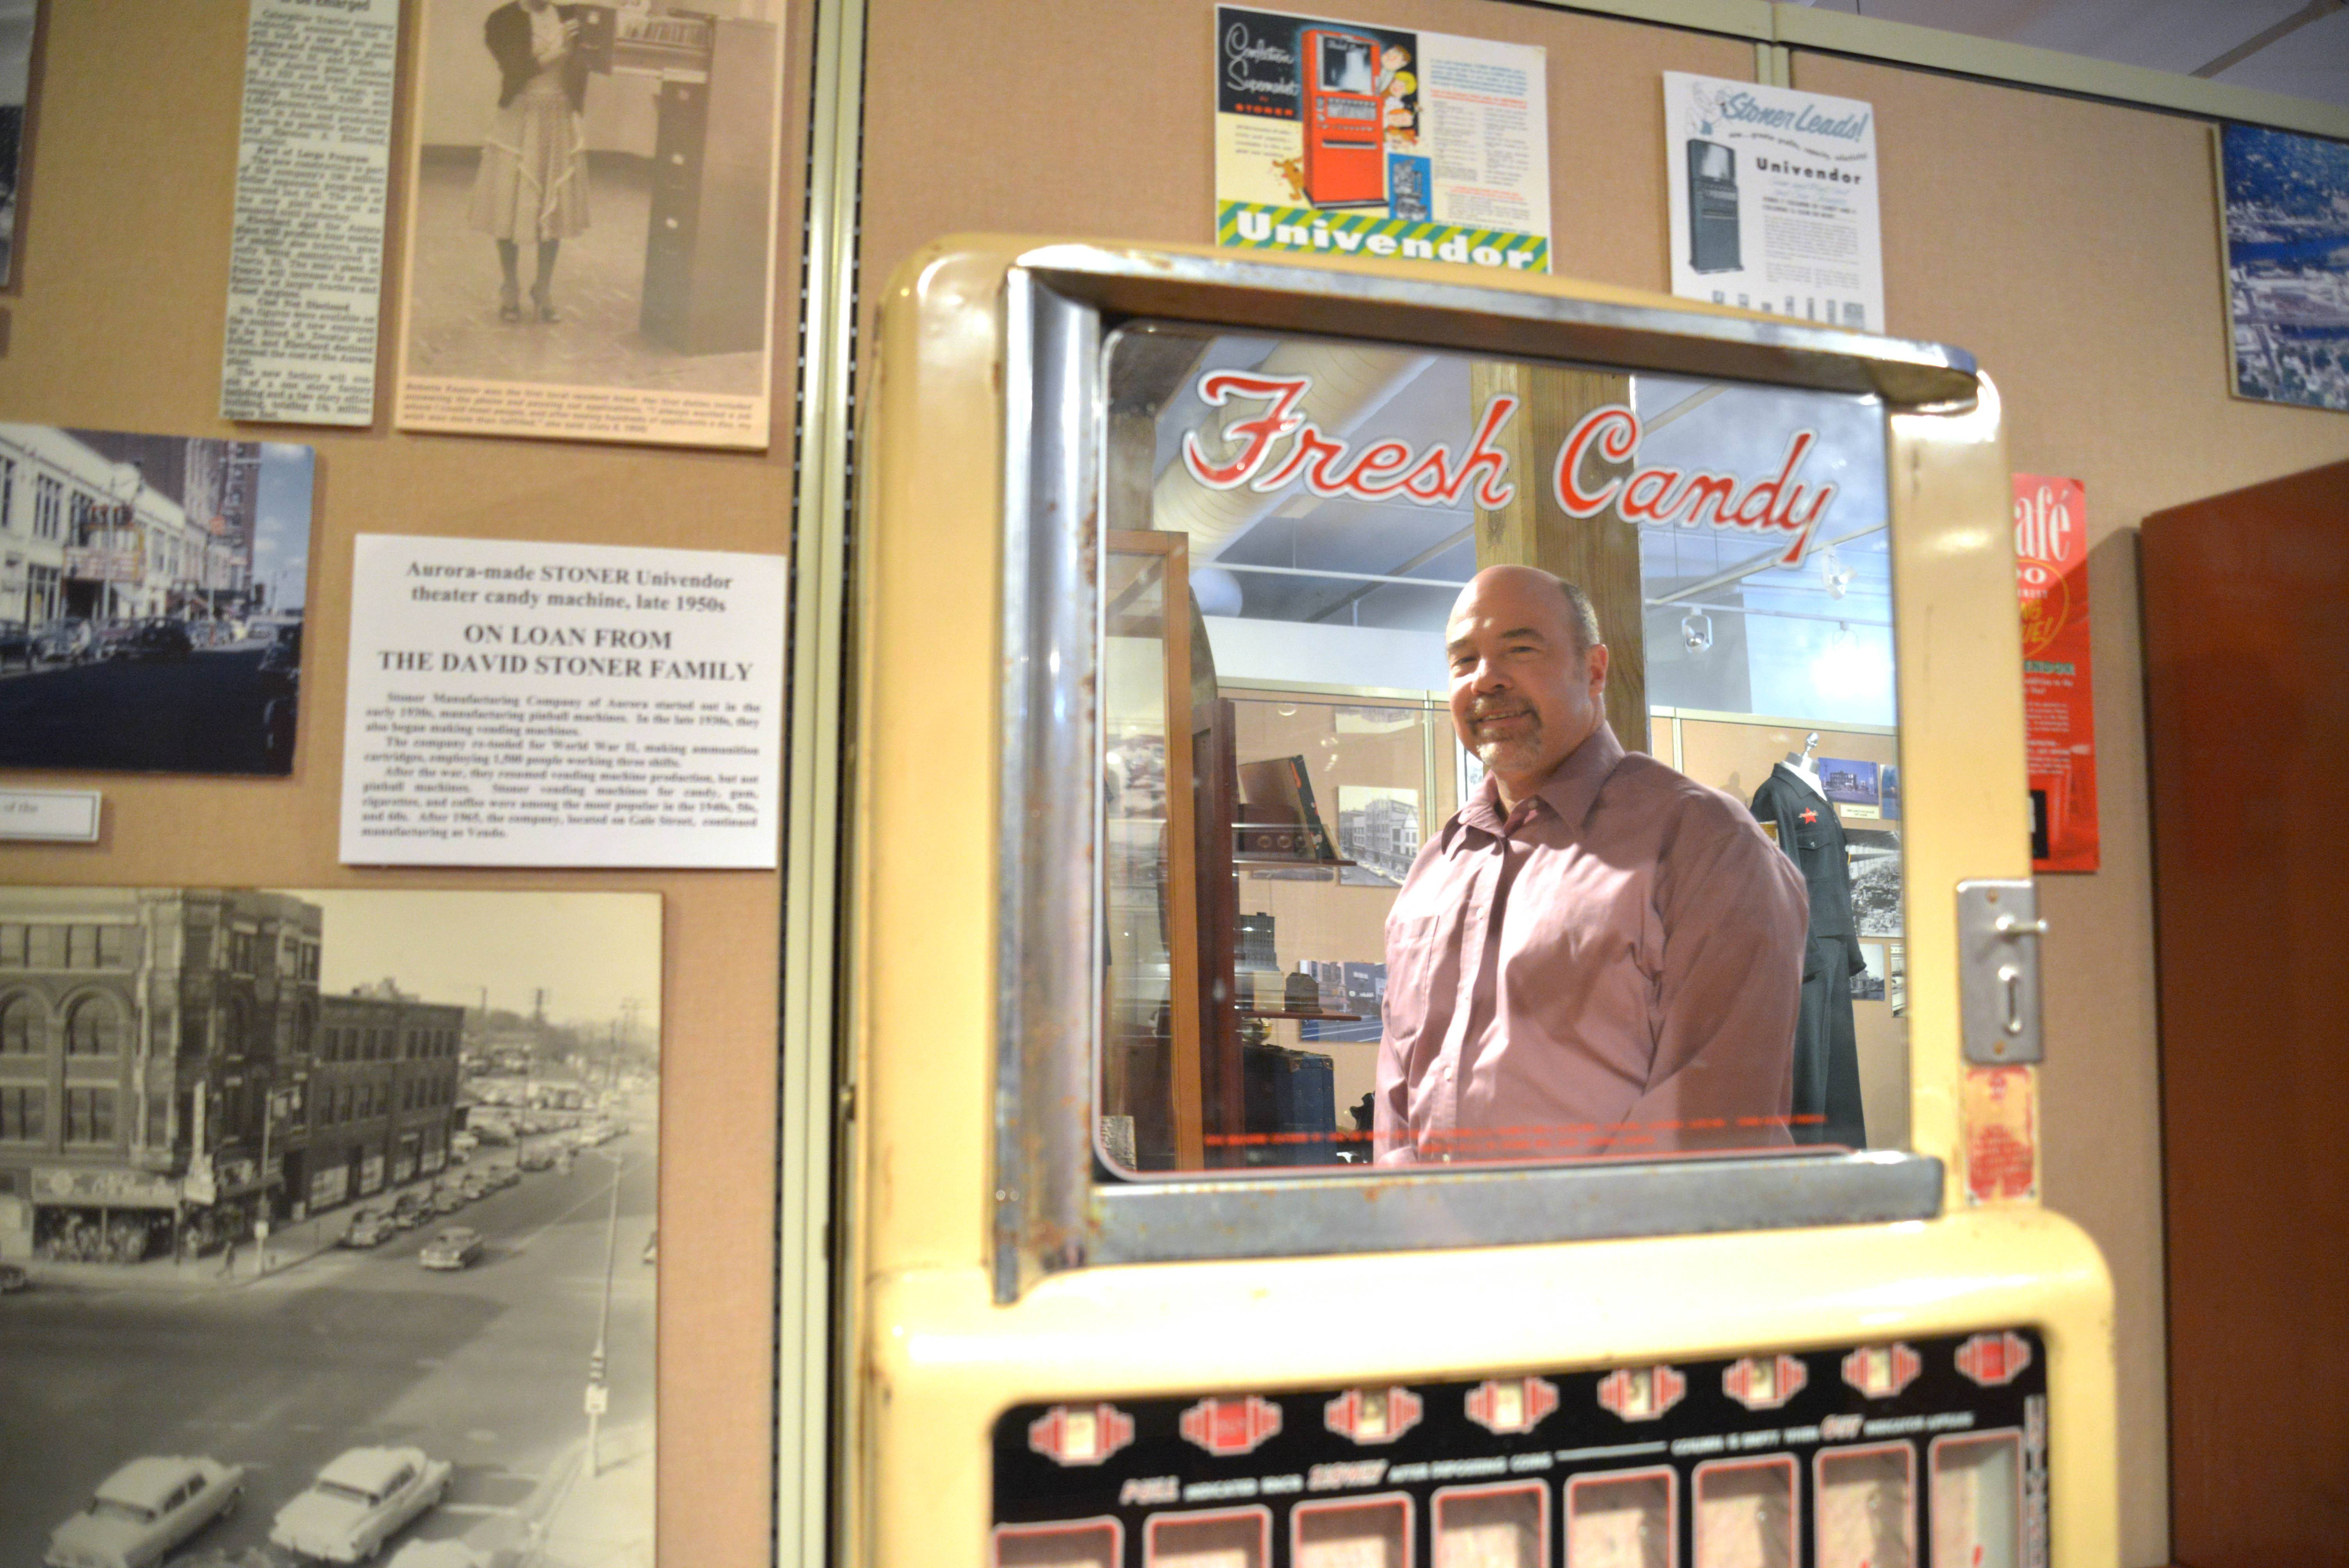 Jaros' reflection is captured in an old candy machine that is on display at the historical society.